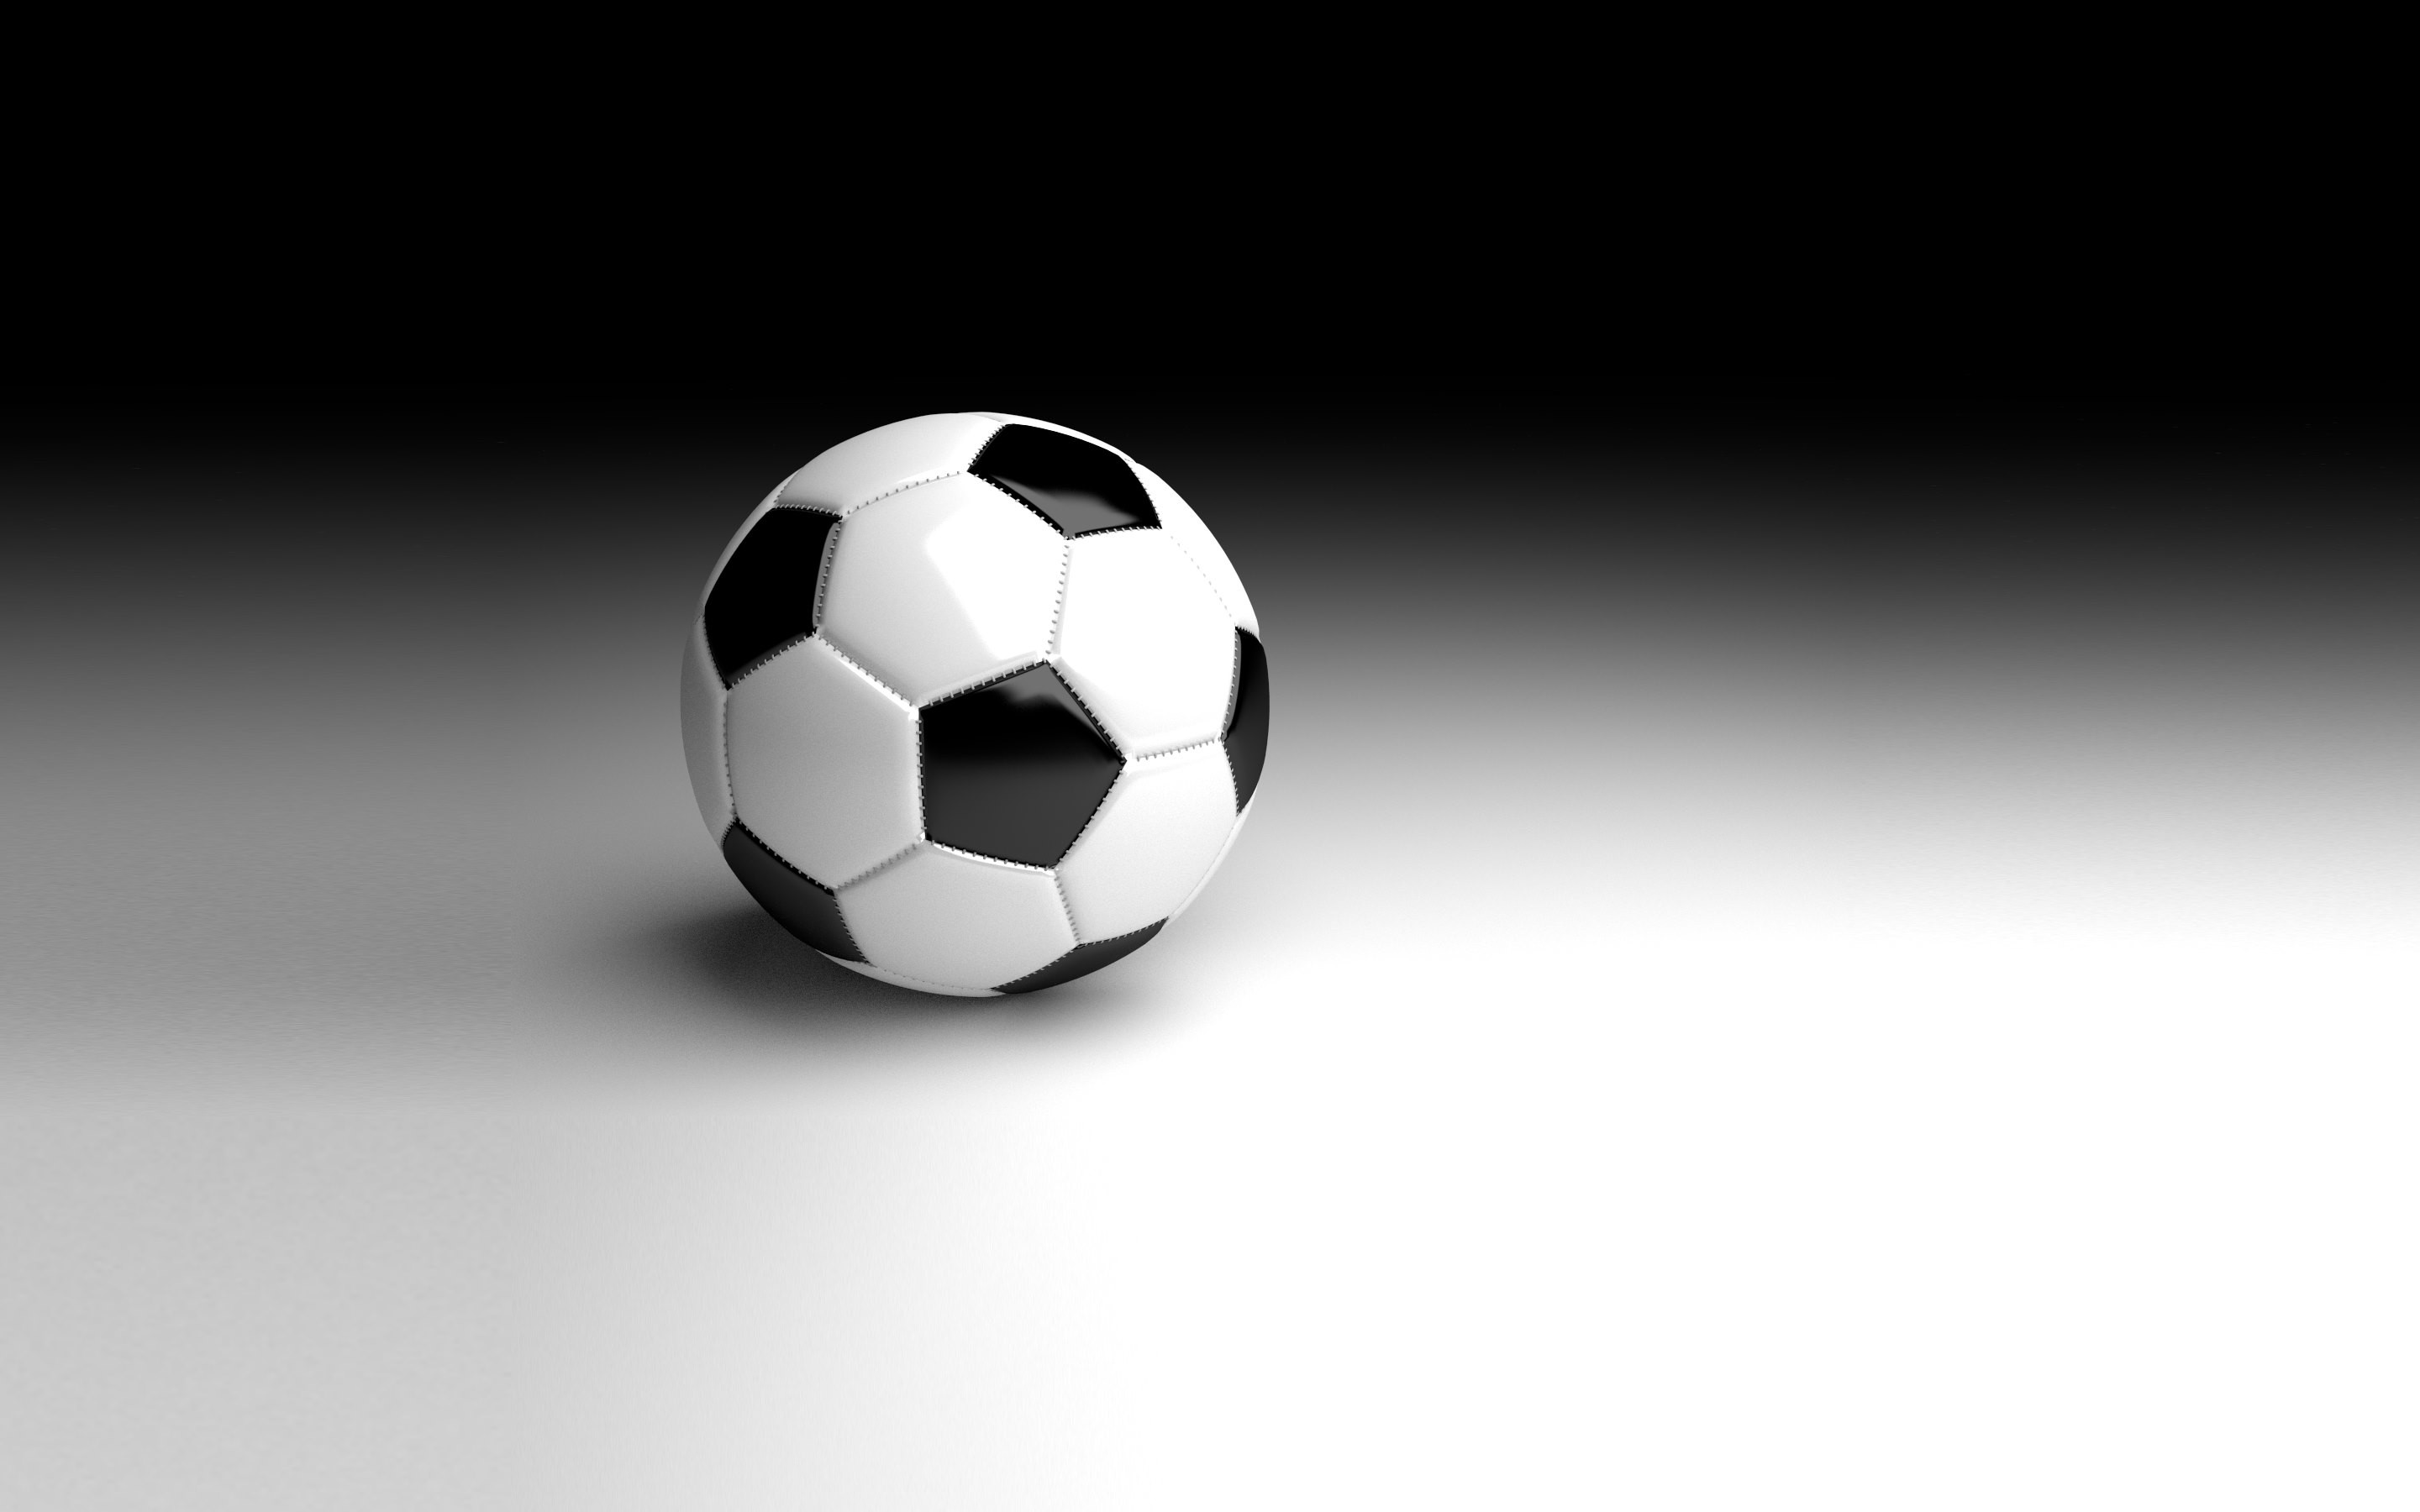 2880x1800 HD Wallpaper 2: Soccer Ball